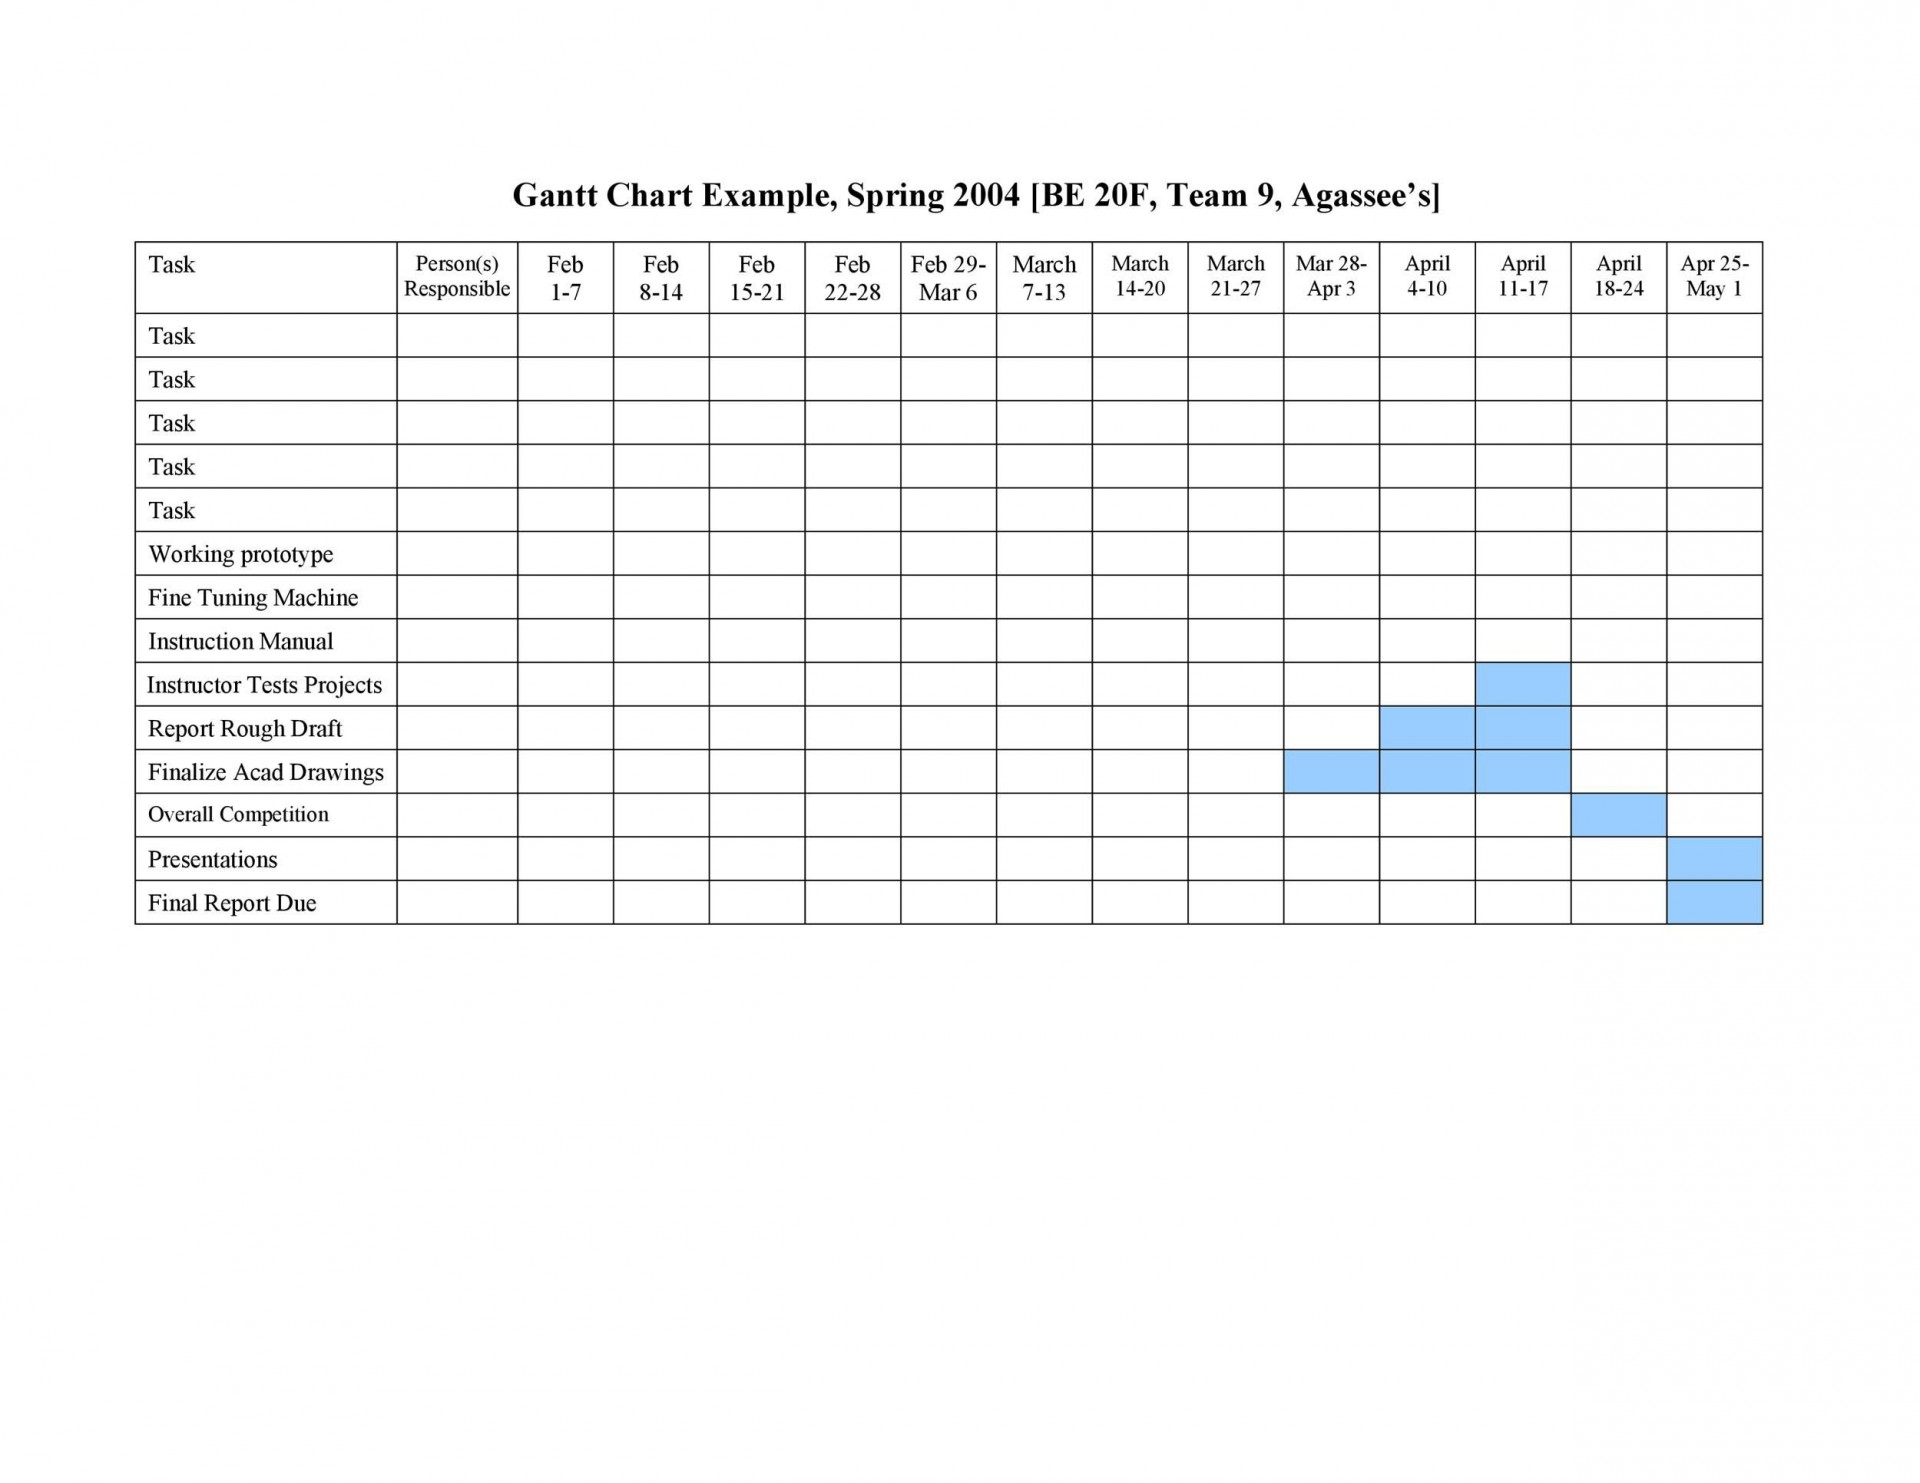 009 Archaicawful Project Gantt Chart Template Excel Free High Def 1920